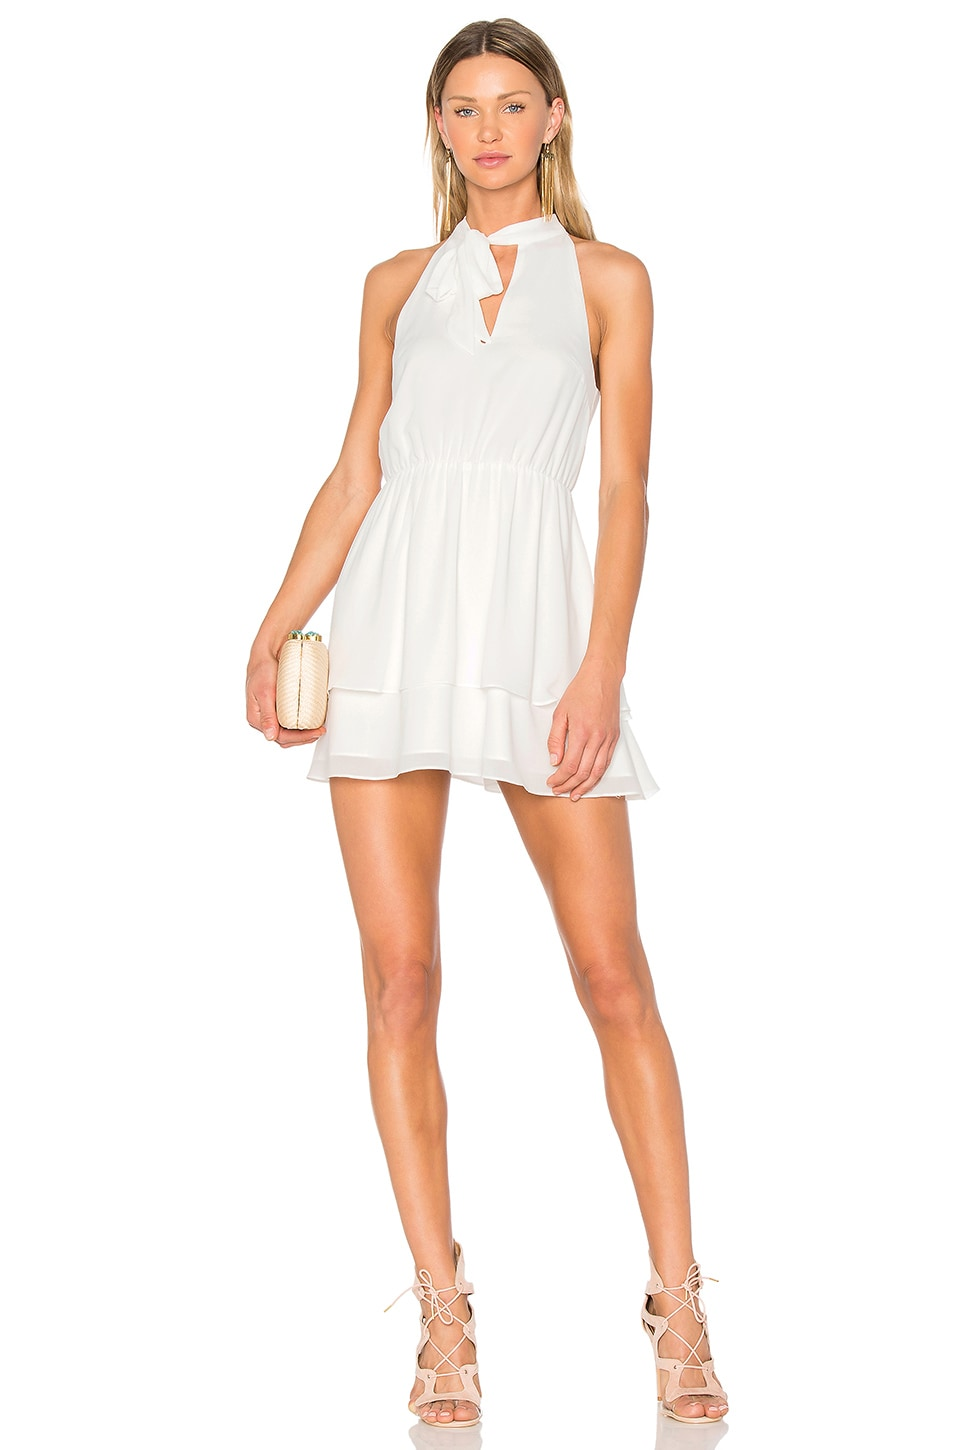 Lovers + Friends x REVOLVE Flower Blossom Dress in White